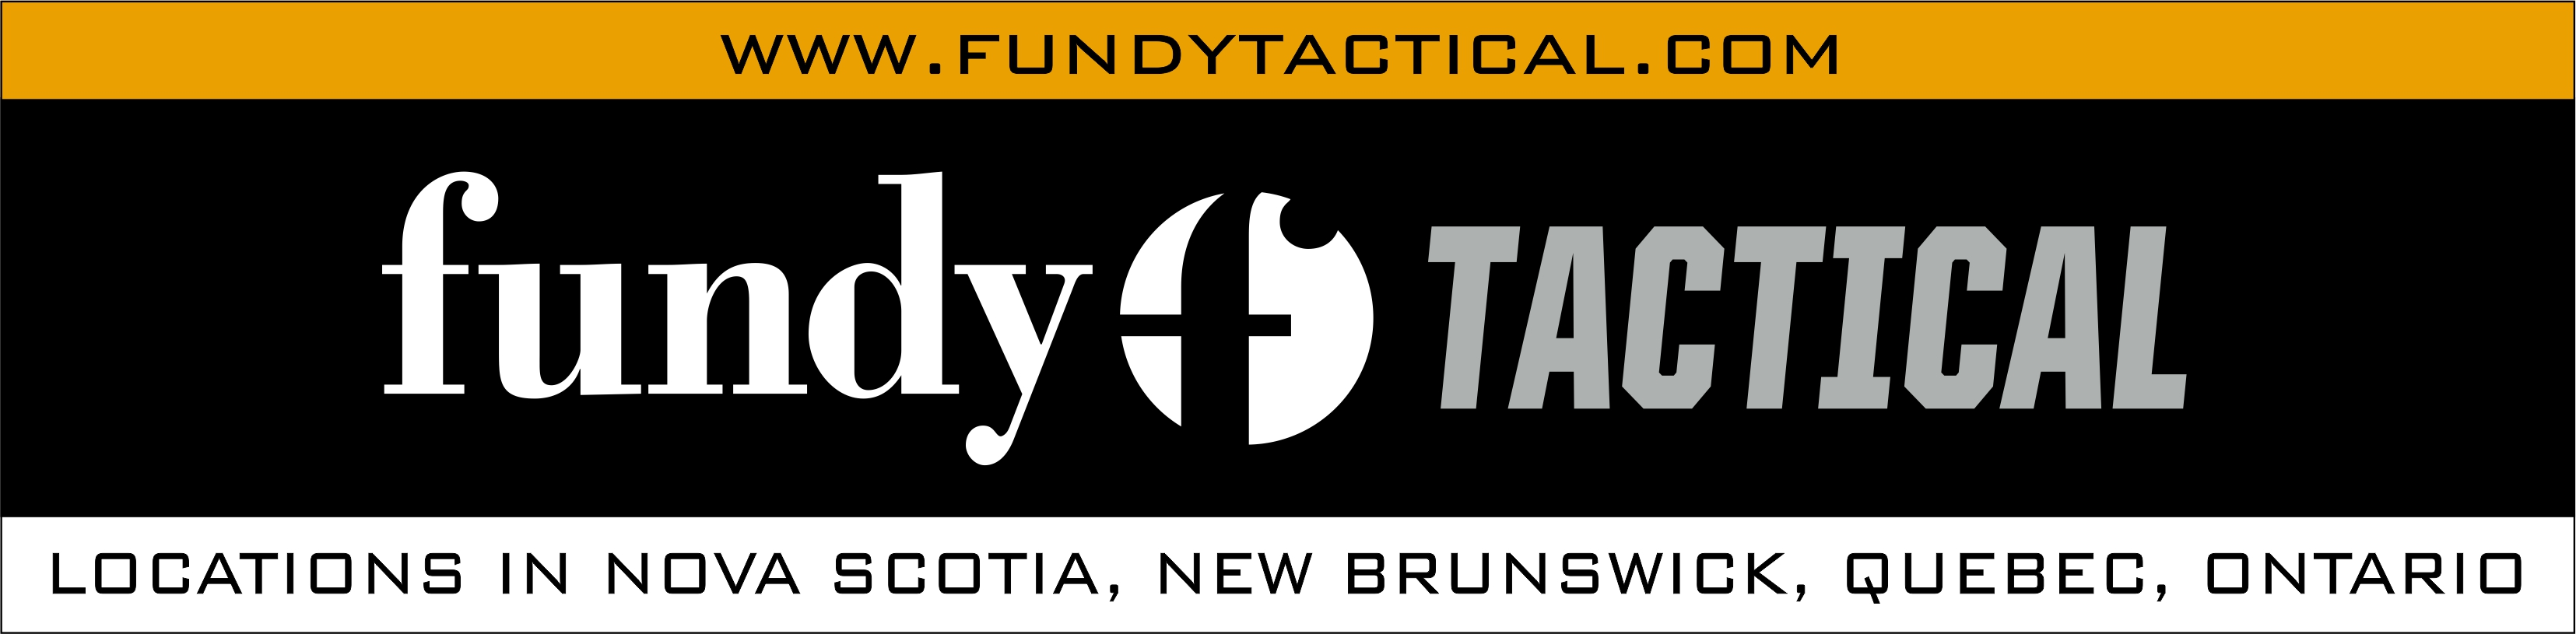 fundy-tactical-banner.jpg